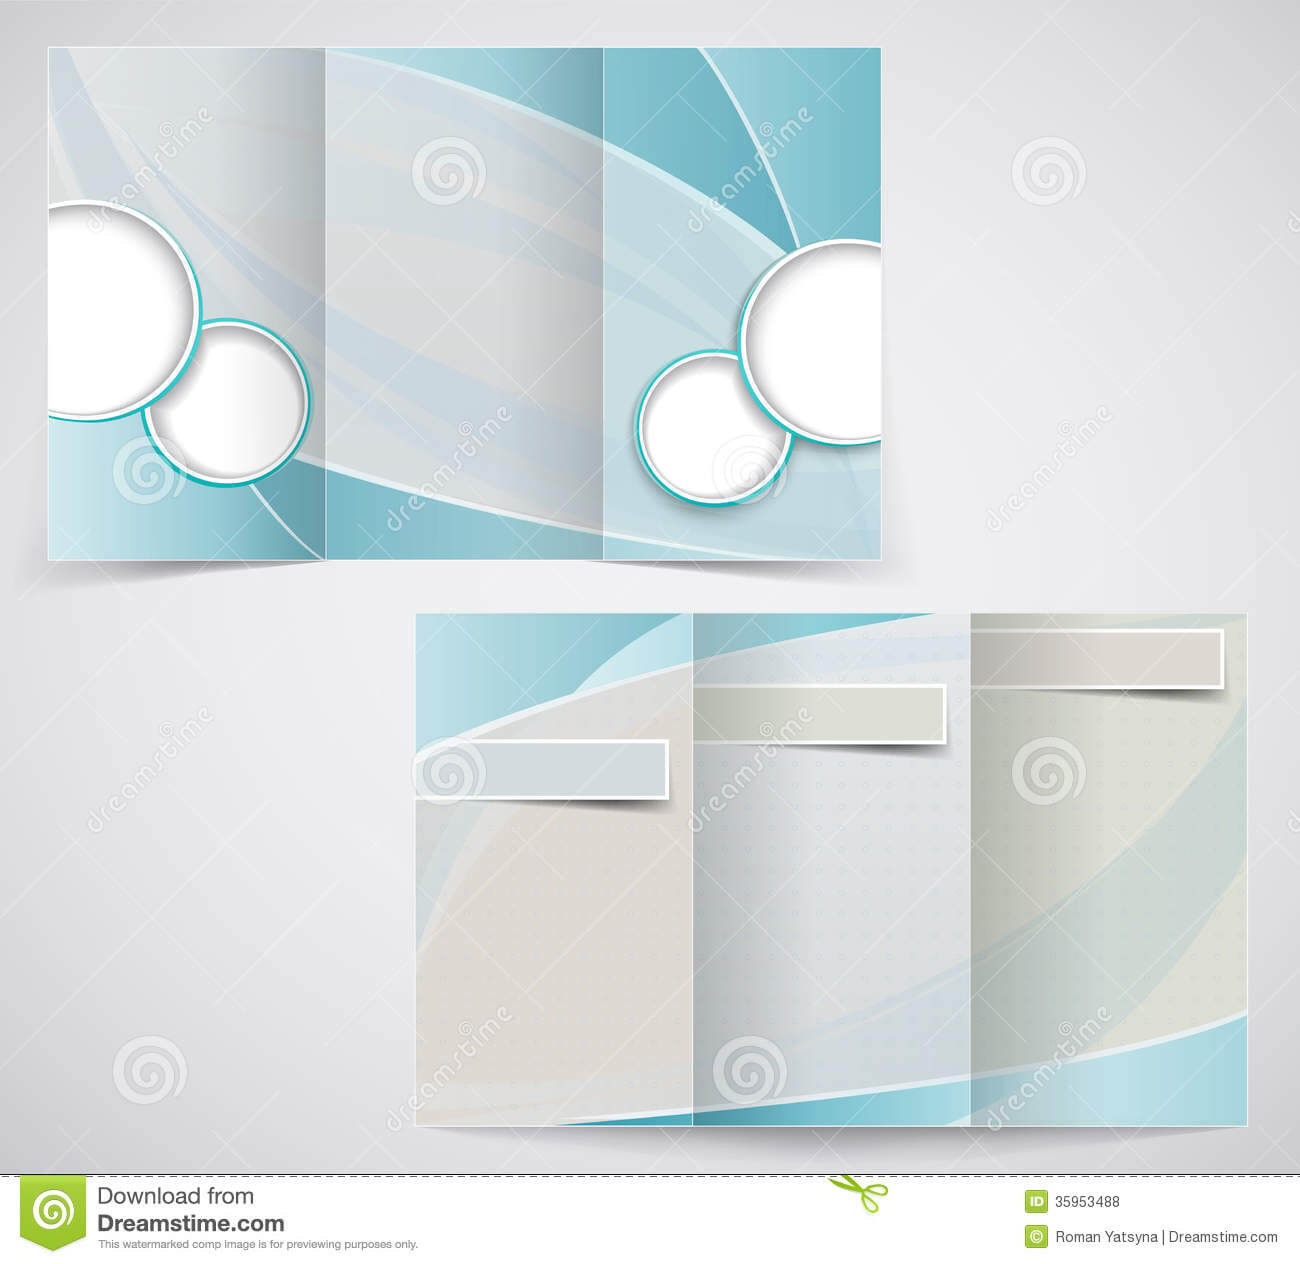 Tri-Fold Business Brochure Template, Vector Blue D Stock with regard to Brochure Template Illustrator Free Download